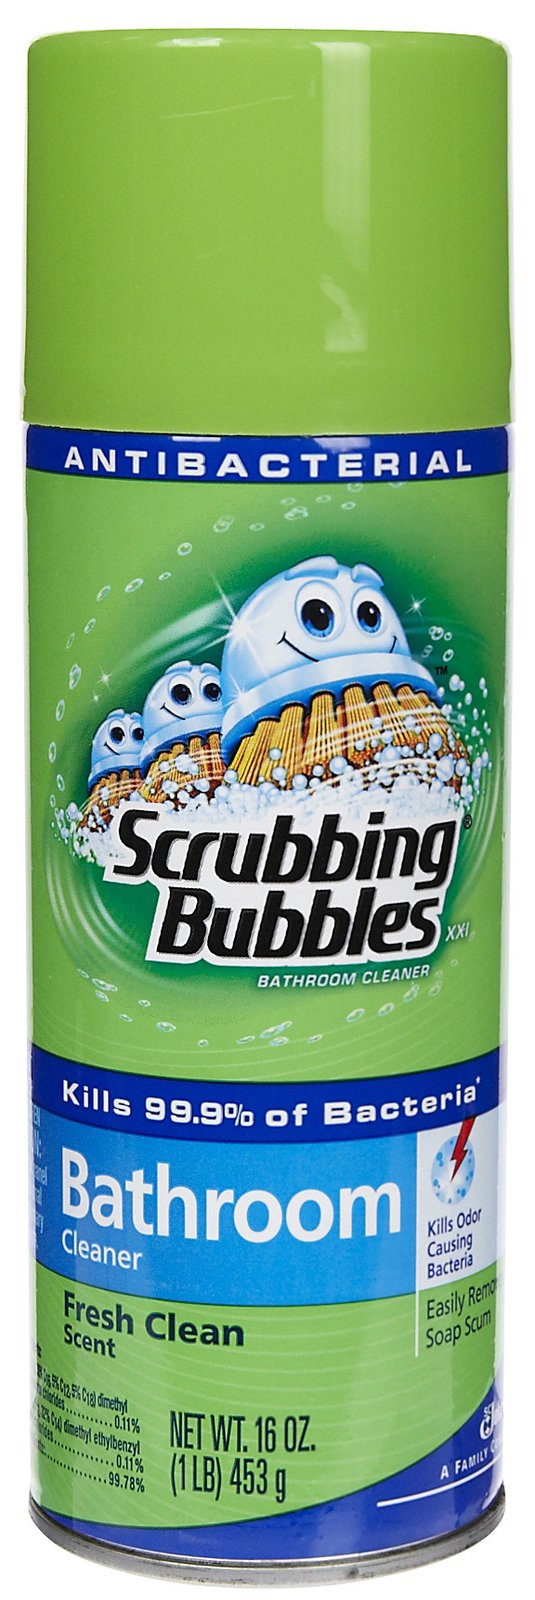 Walgreens Scrubbing Bubbles Bathroom Cleaning Products